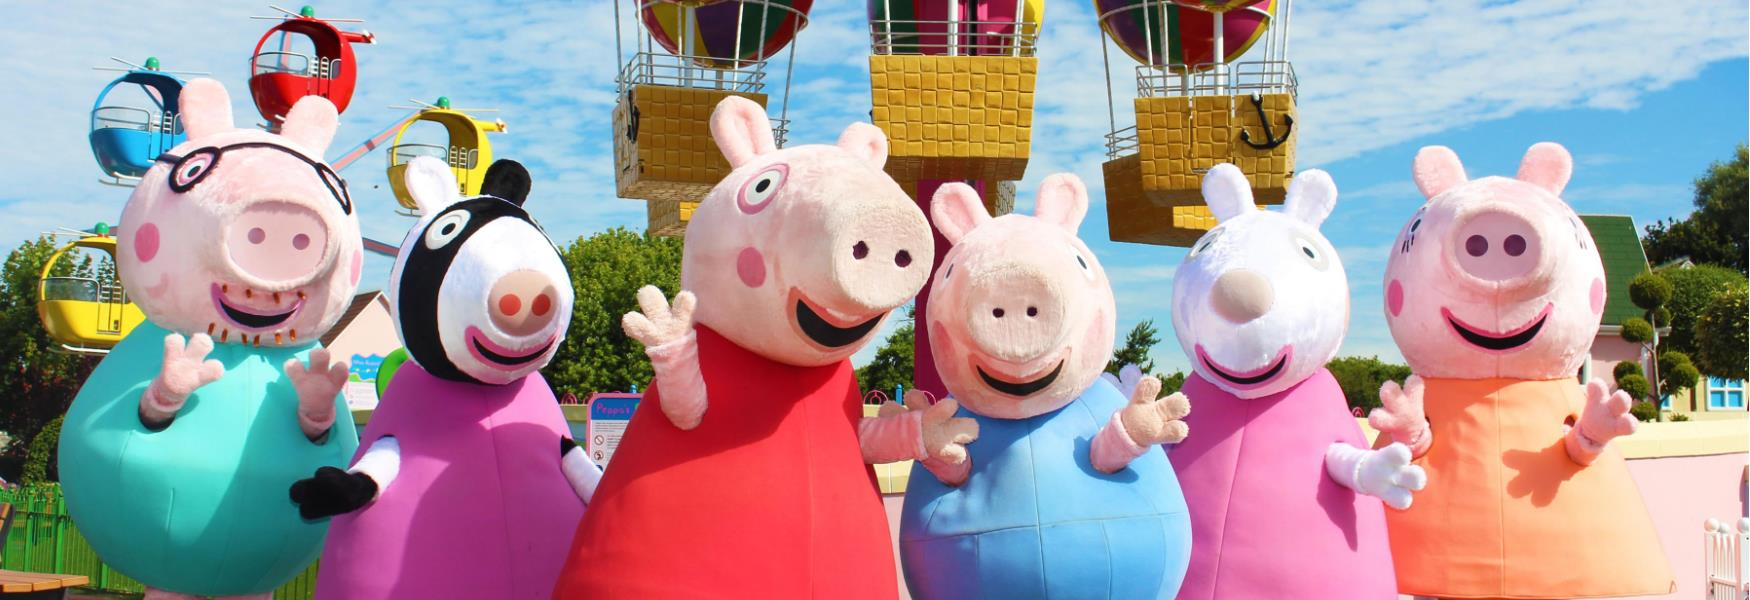 peppa pig and friends at peppa pig world at Paultons park family friendly theme park in the new forest